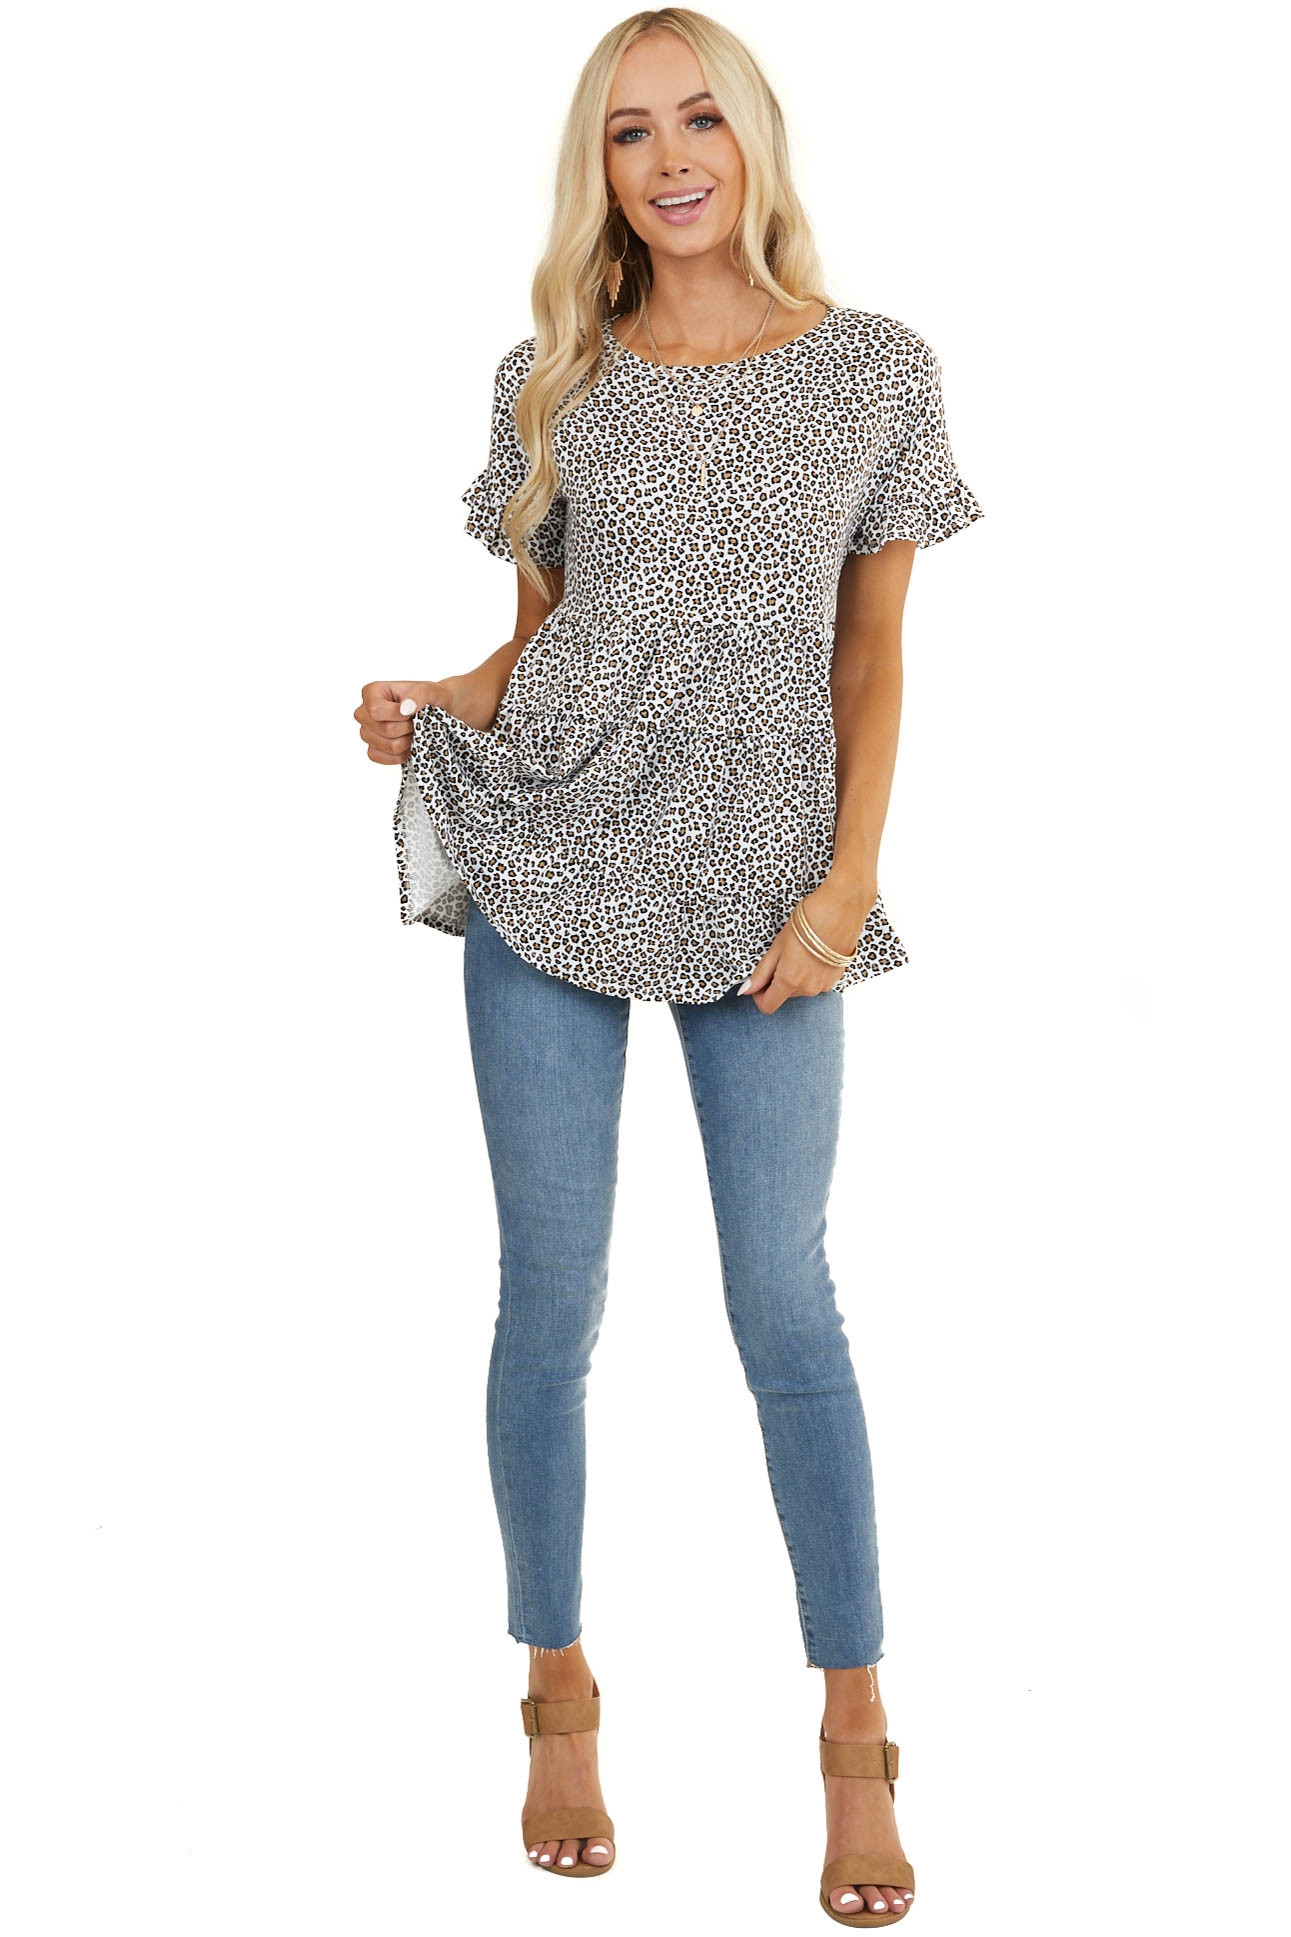 Ivory and Beige Leopard Print Tiered Top with Short Sleeves